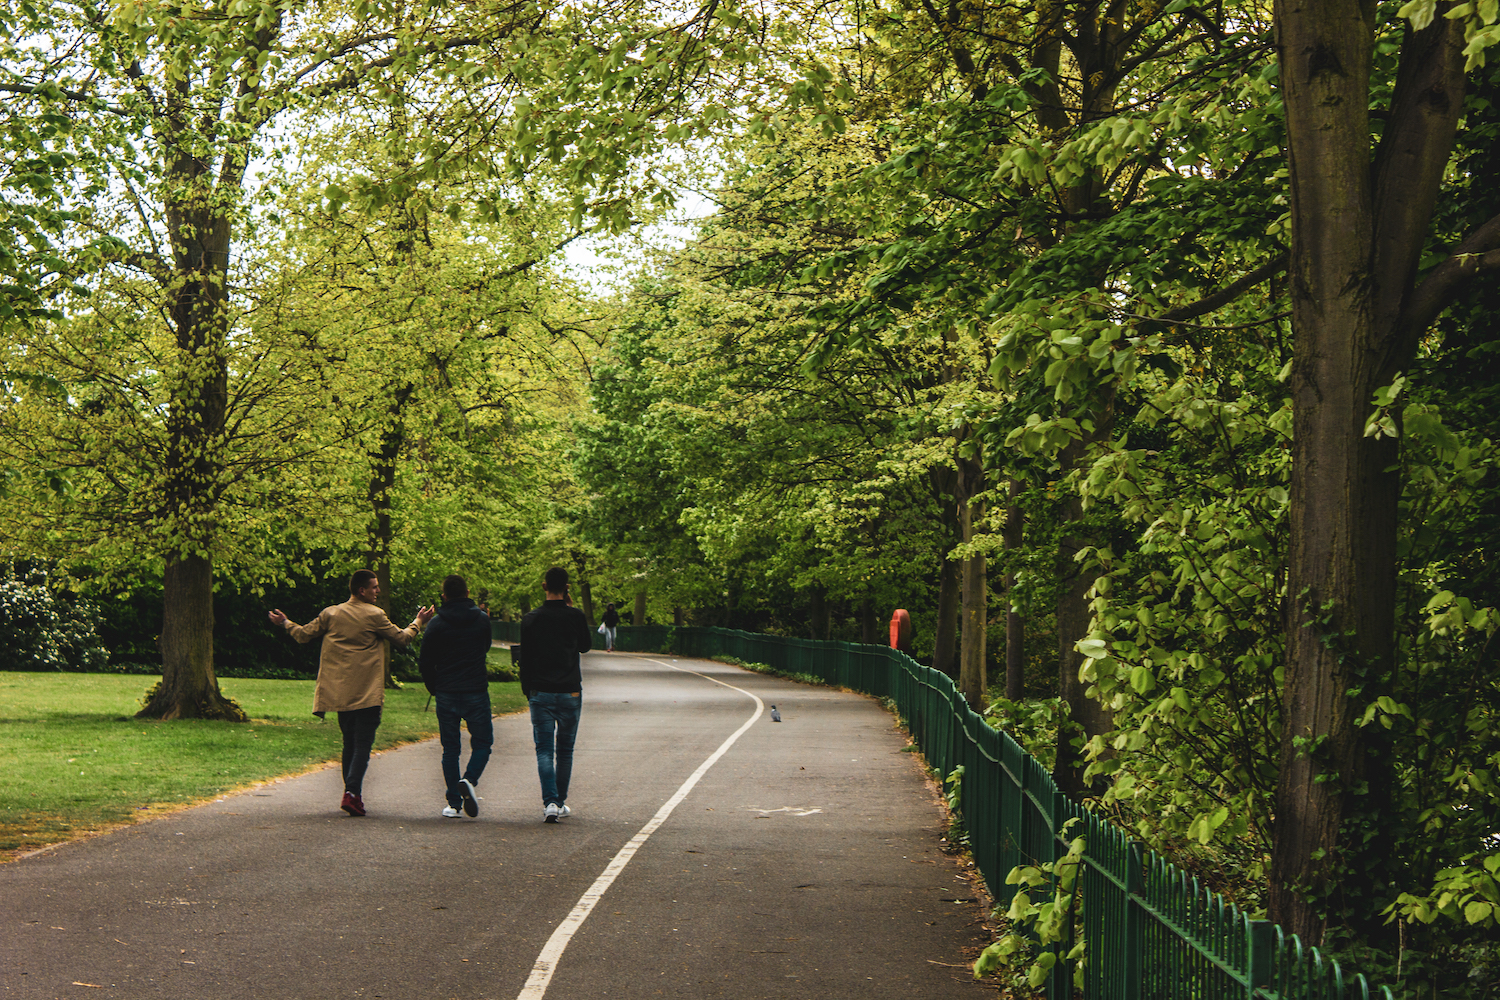 Professional Photography Three Asian Men Walk On Park Path Talking Surrounded By Green Trees